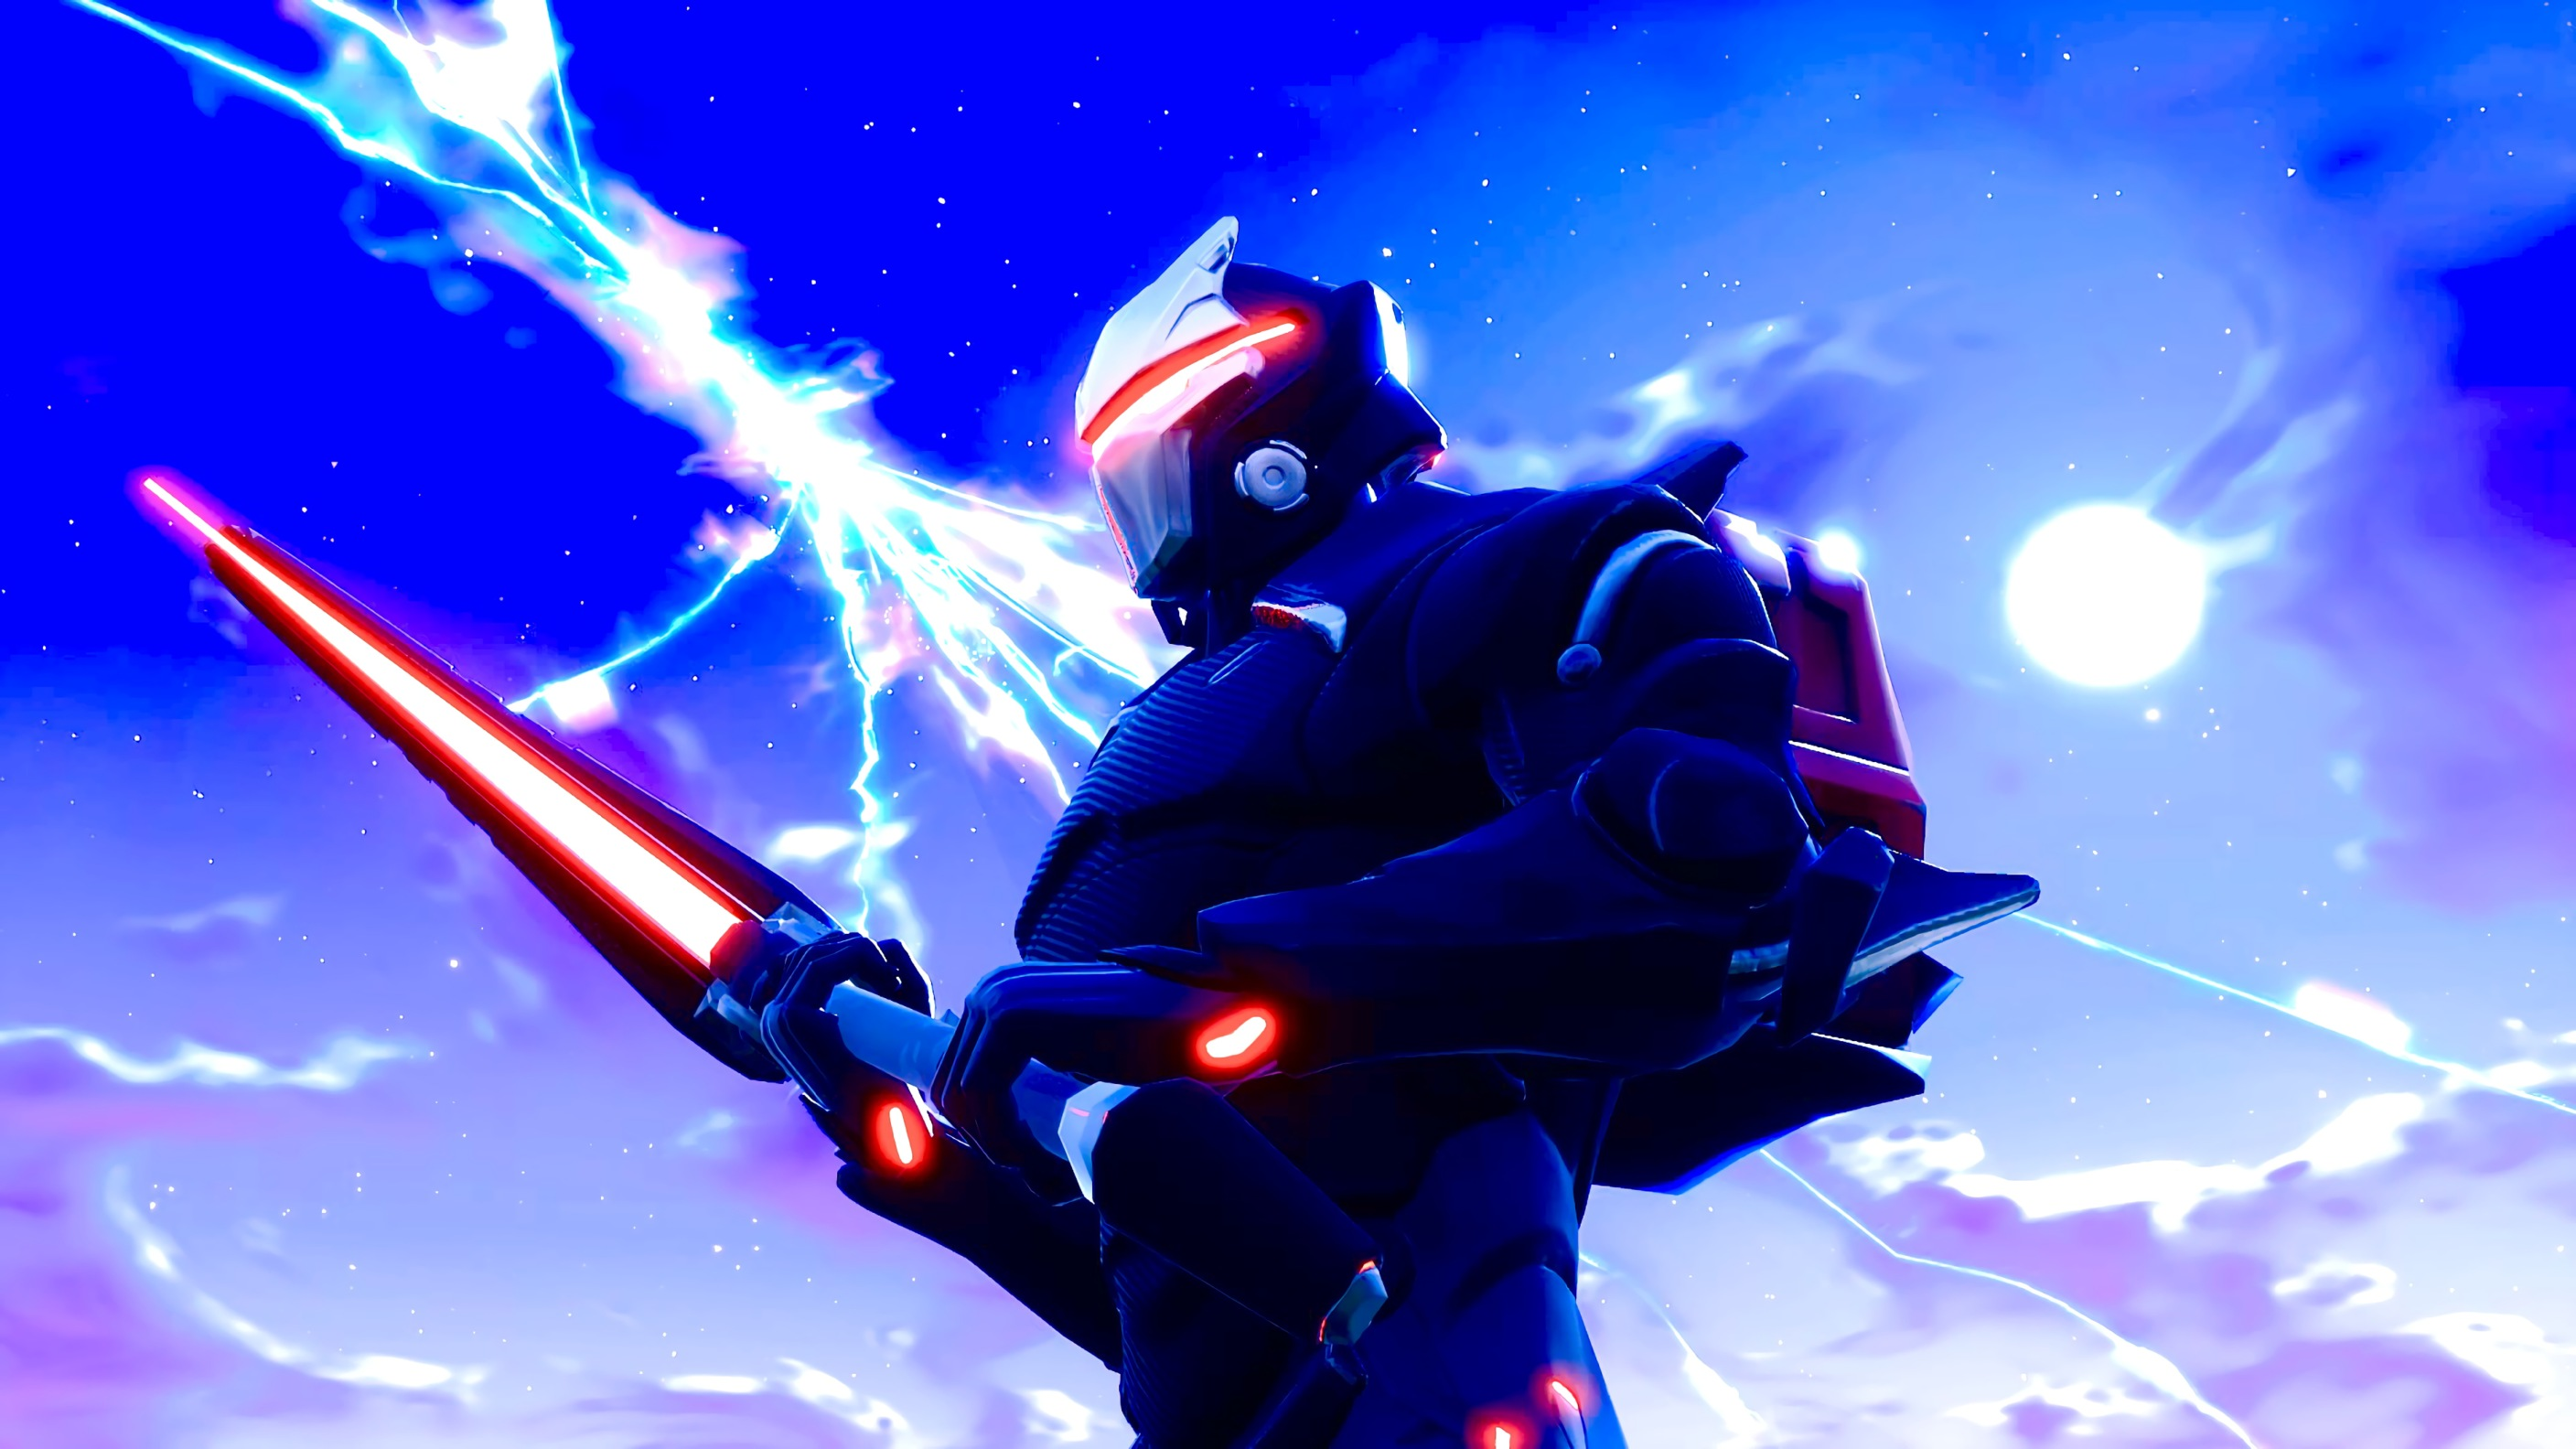 Fortnite Omega Wallpapers Hd New Backgrounds Lovelytab